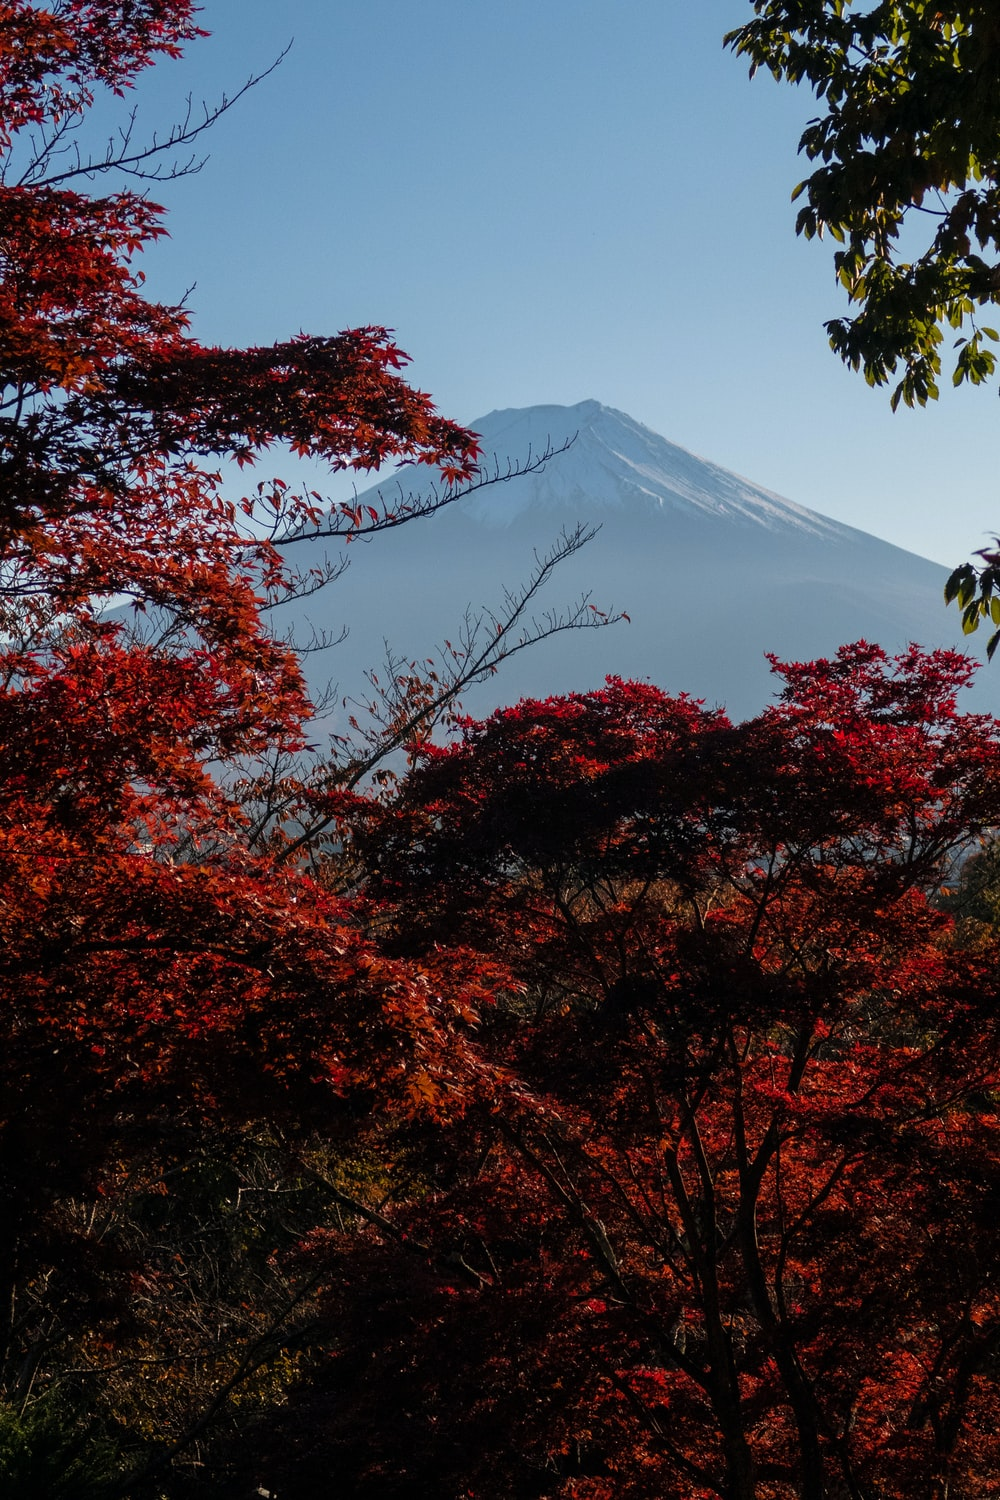 red-leafed trees near mountain